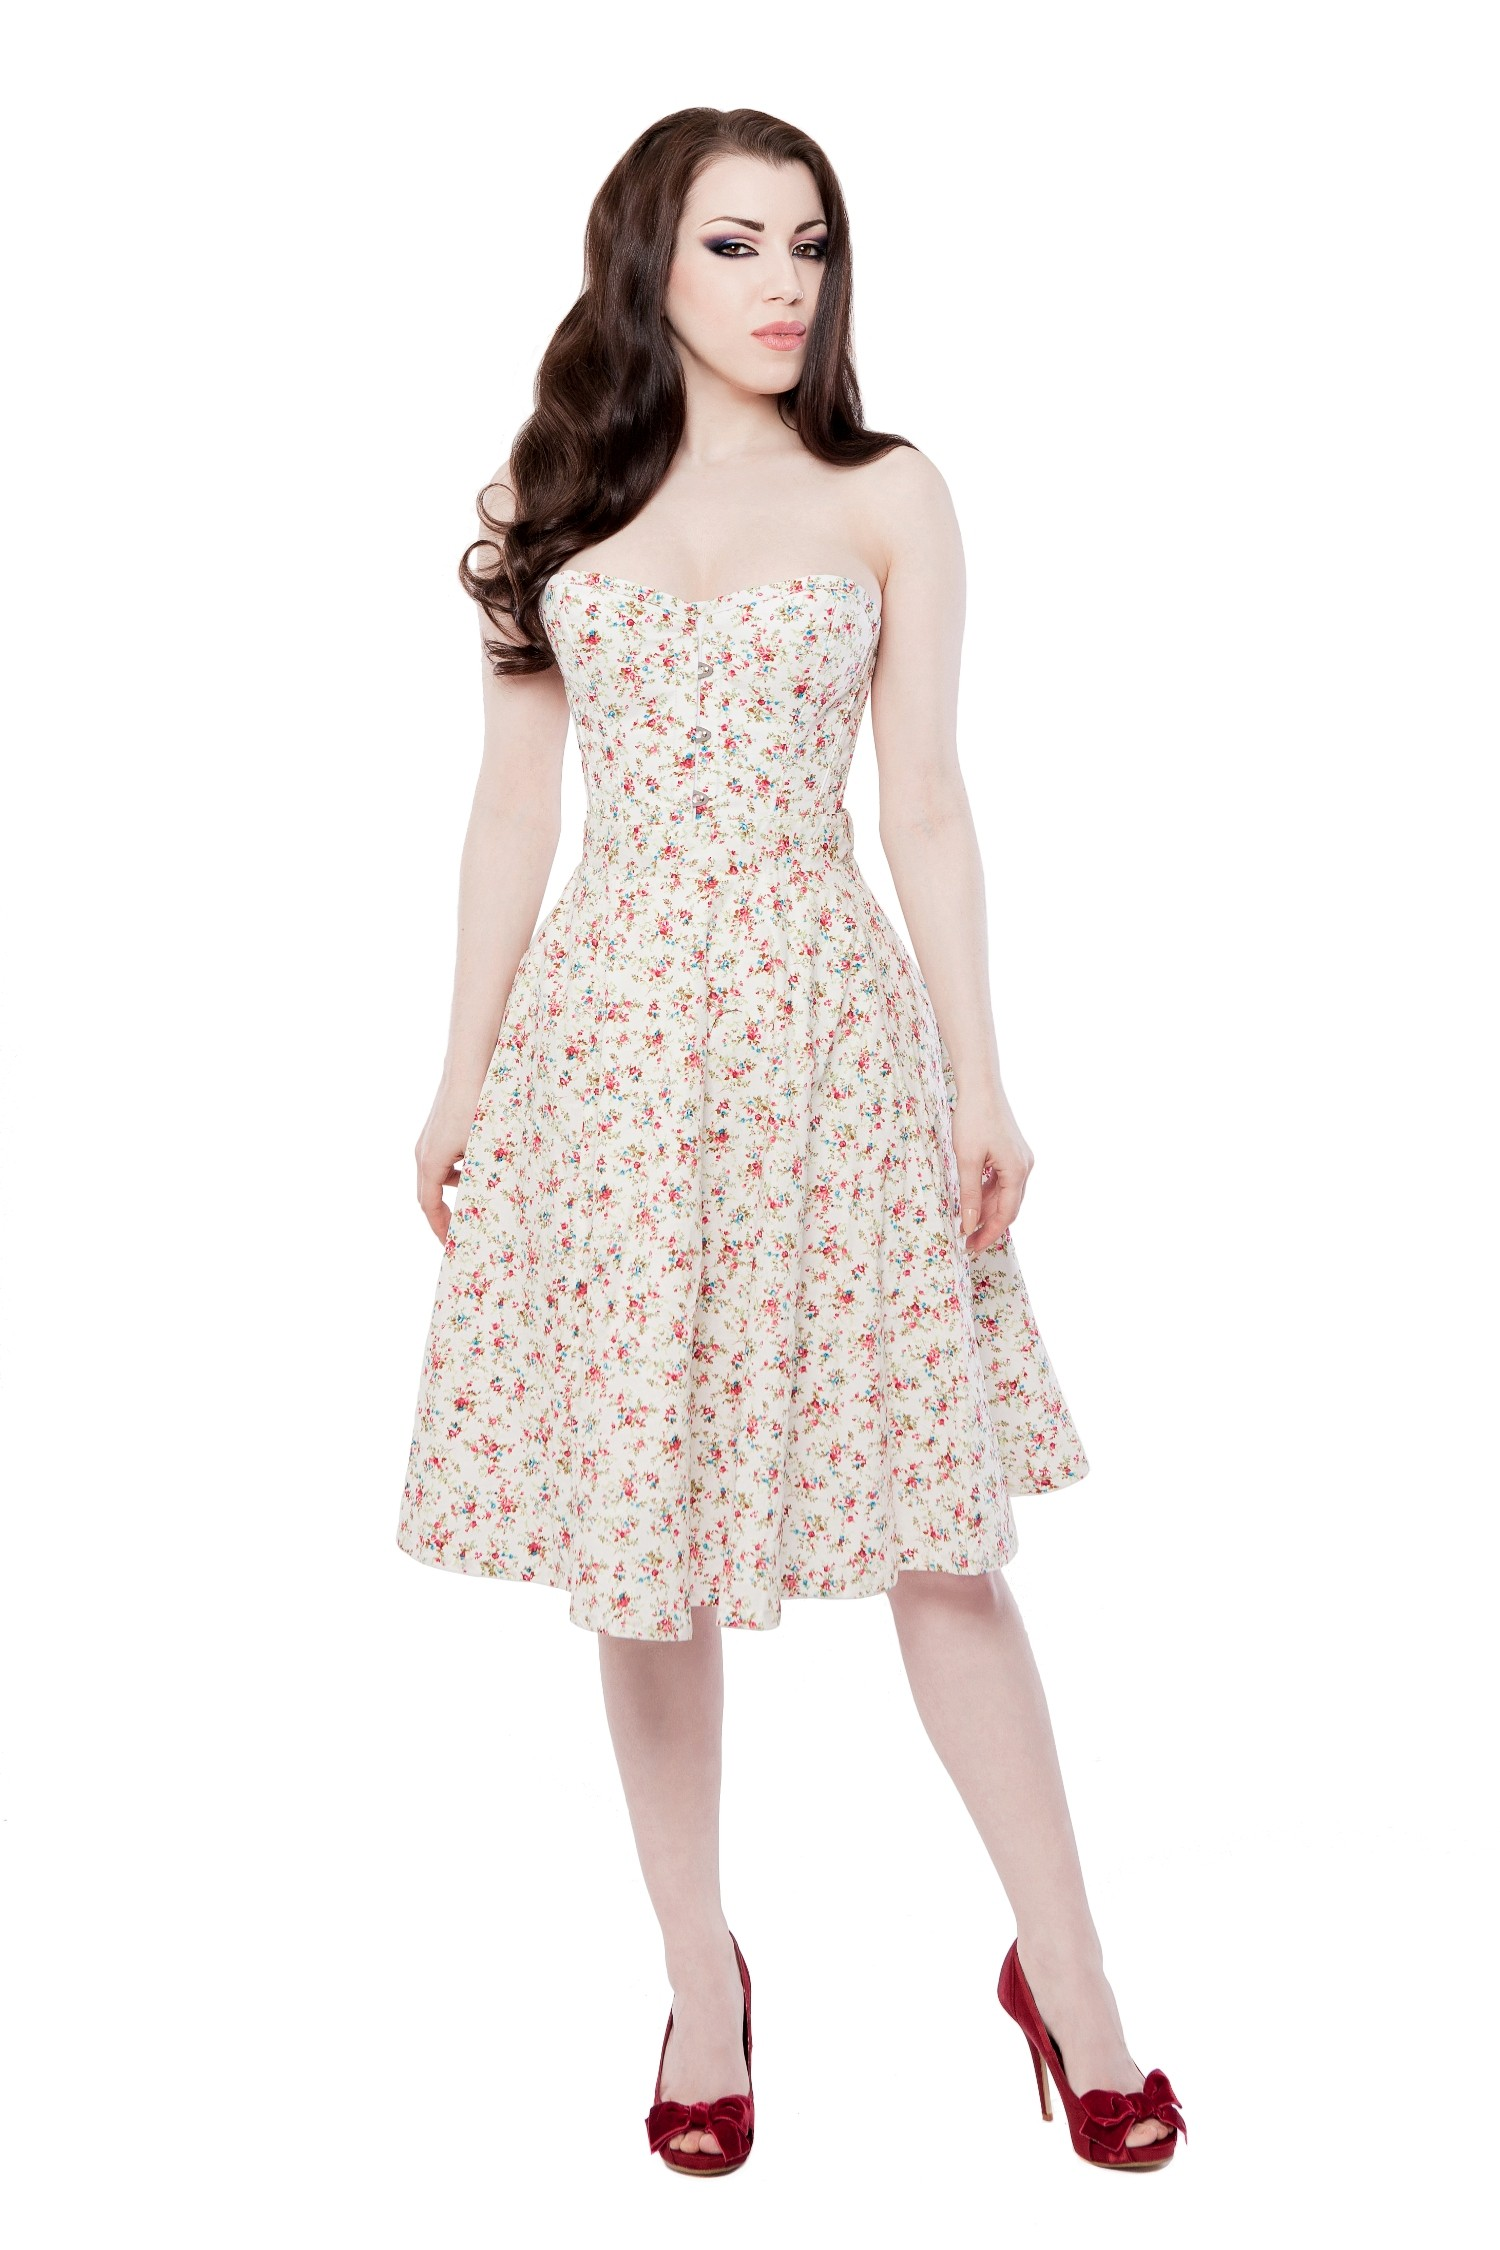 Playgirl Ivory Floral Circle Skirt